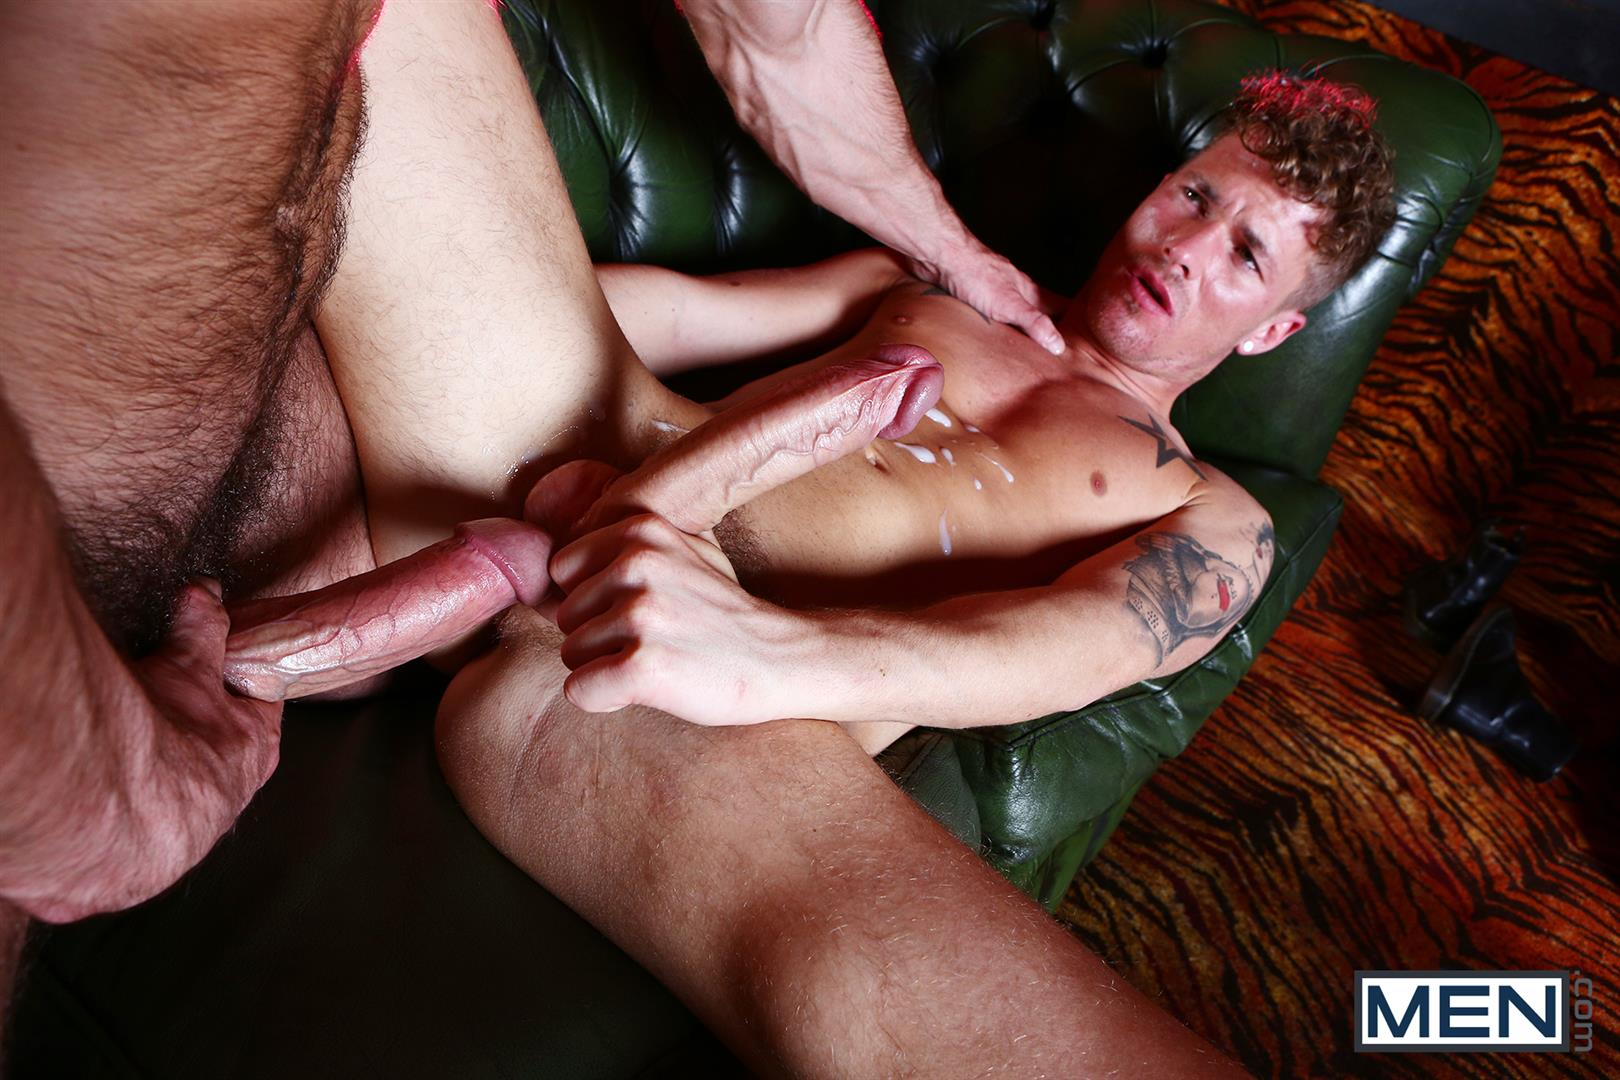 Men Paddy OBrian and McKenise Cross Muscle Hunks With Horse Cocks Fucking Amateur Gay Porn 20 Paddy OBrian Fucking McKensie Cross With His Big Thick Cock